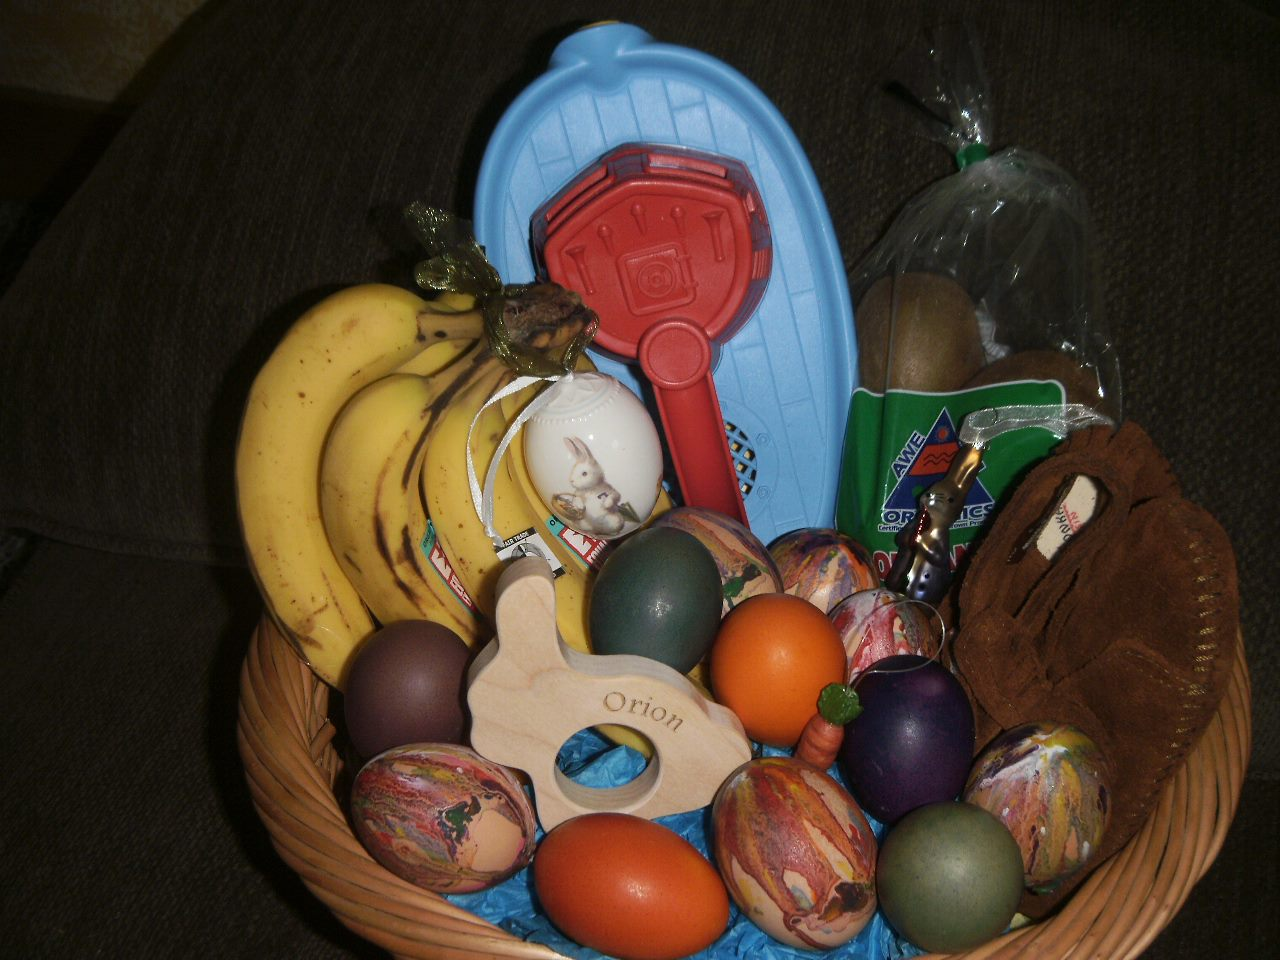 Made in usa easter basket ideas eco friendly babyfamily products 468244431494160199563399256315o negle Choice Image